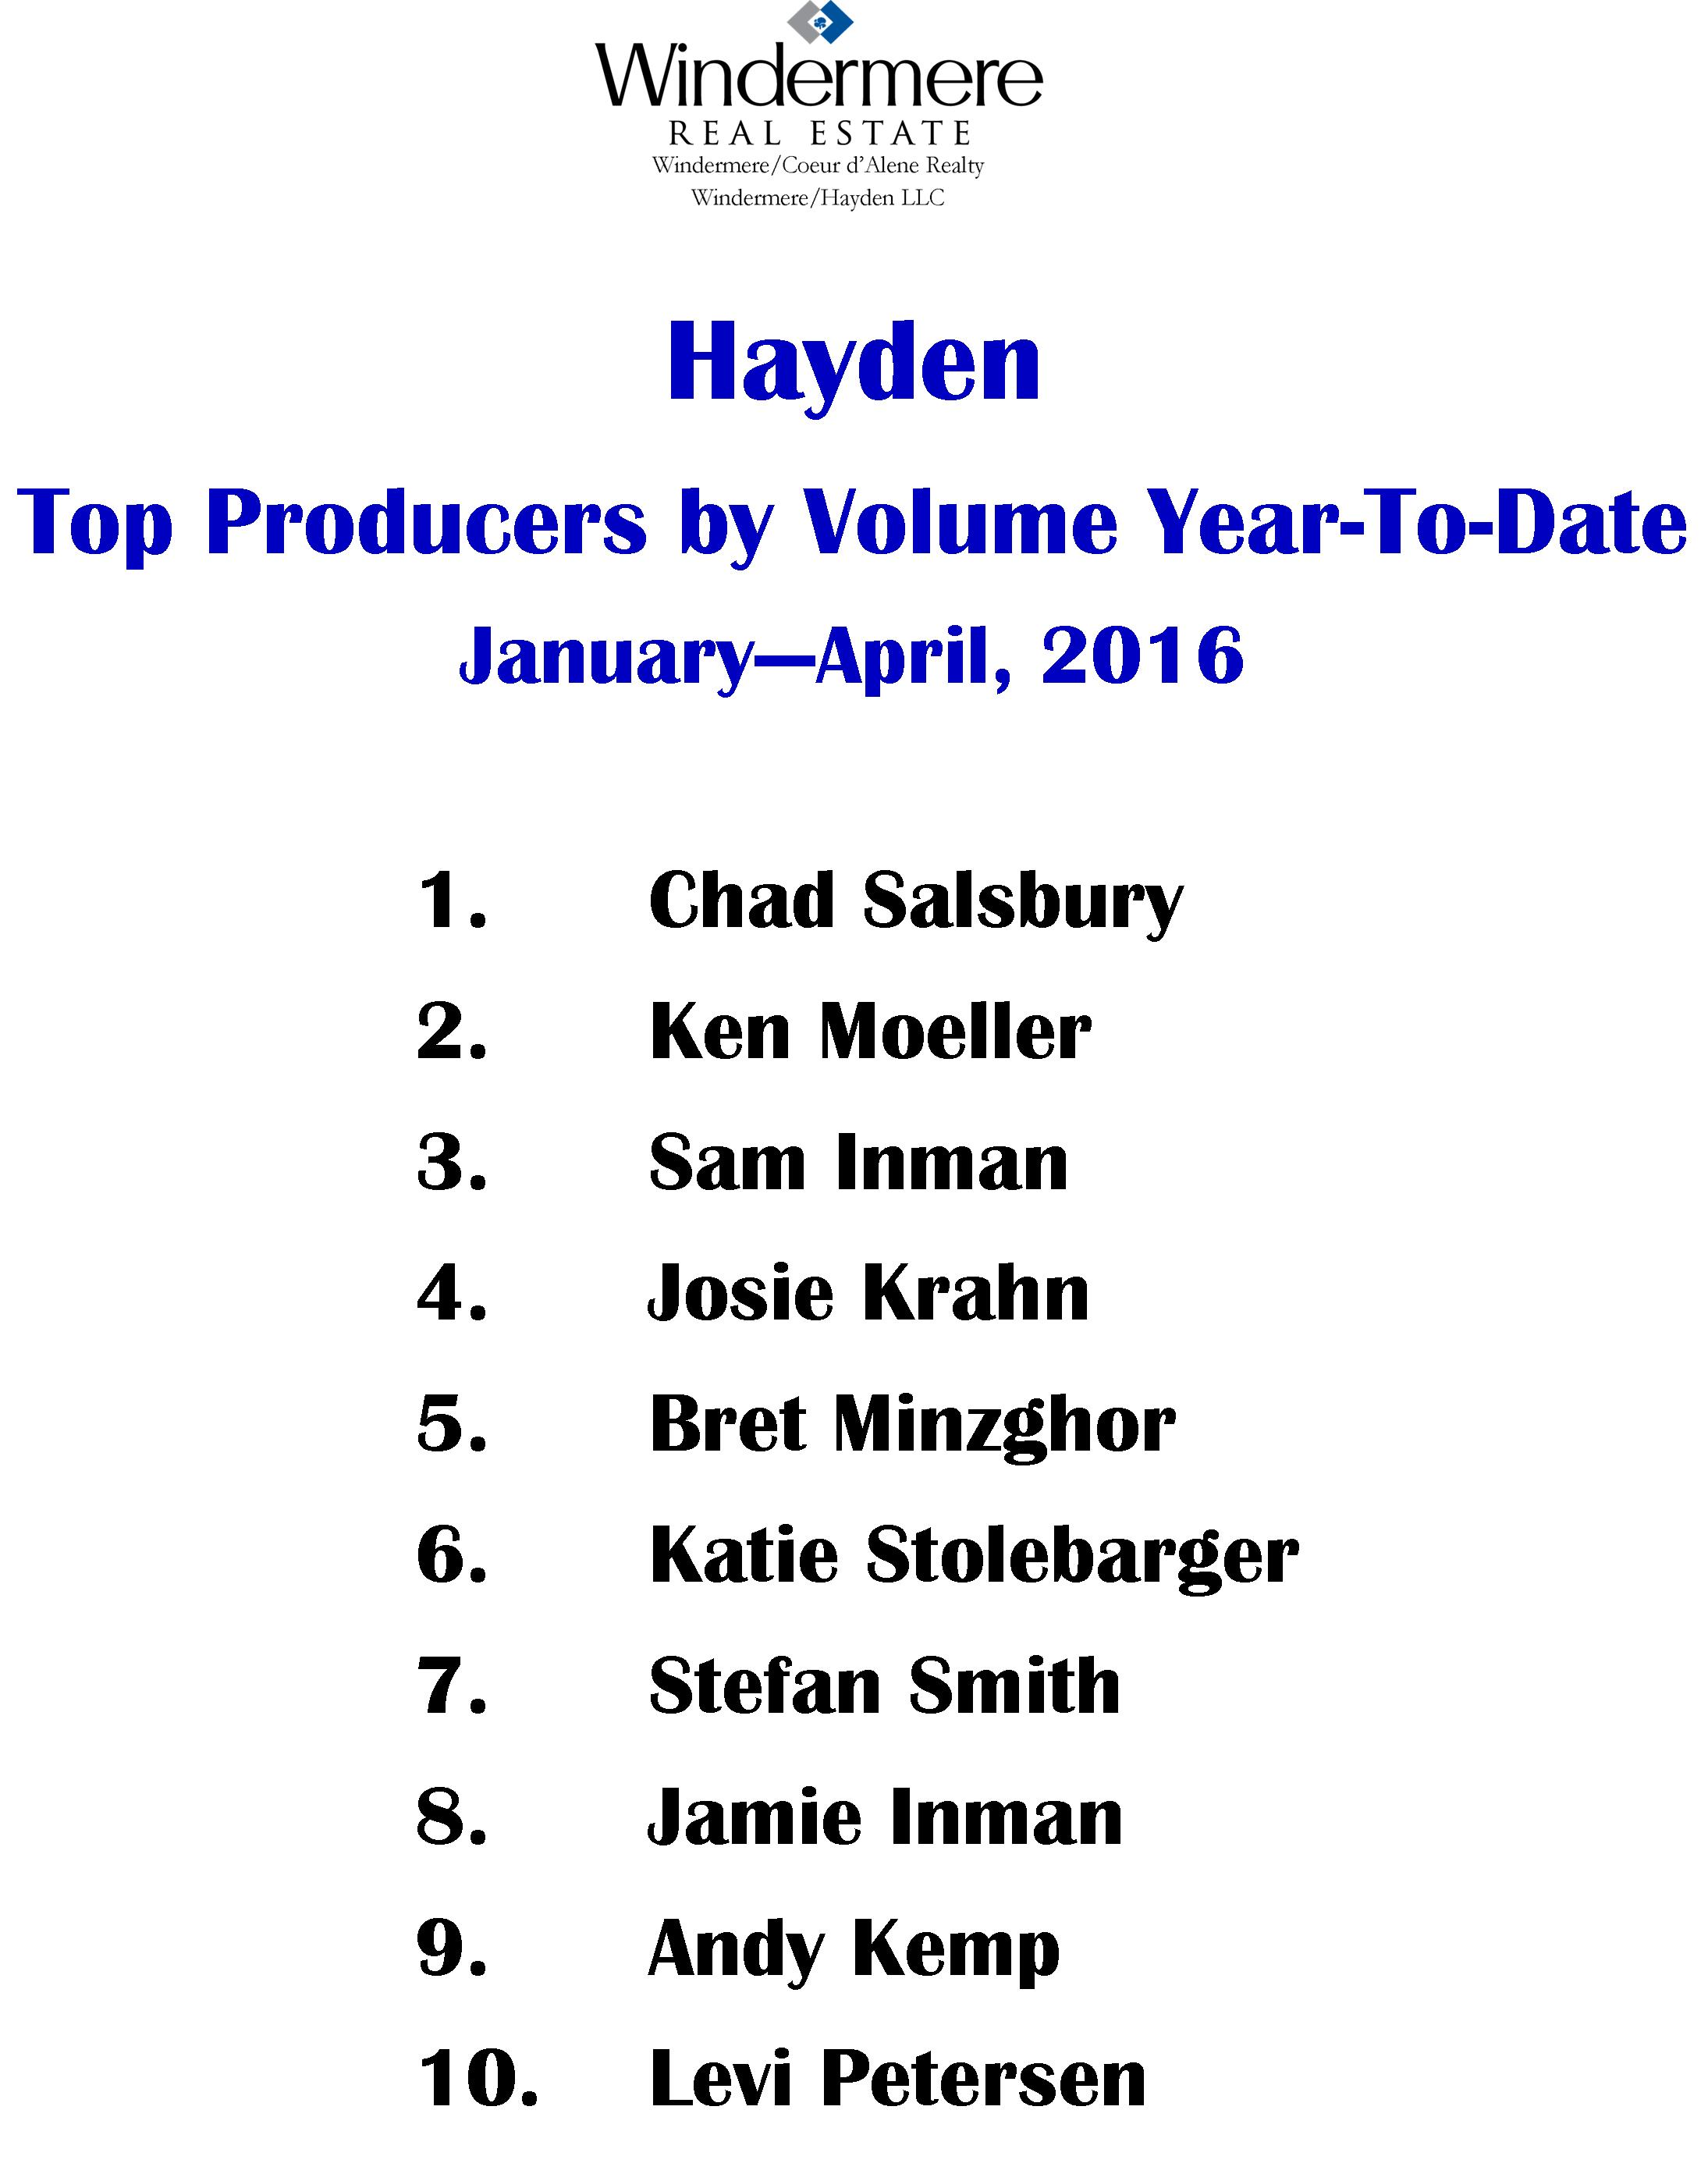 Hayden Office - Top Producers YTD